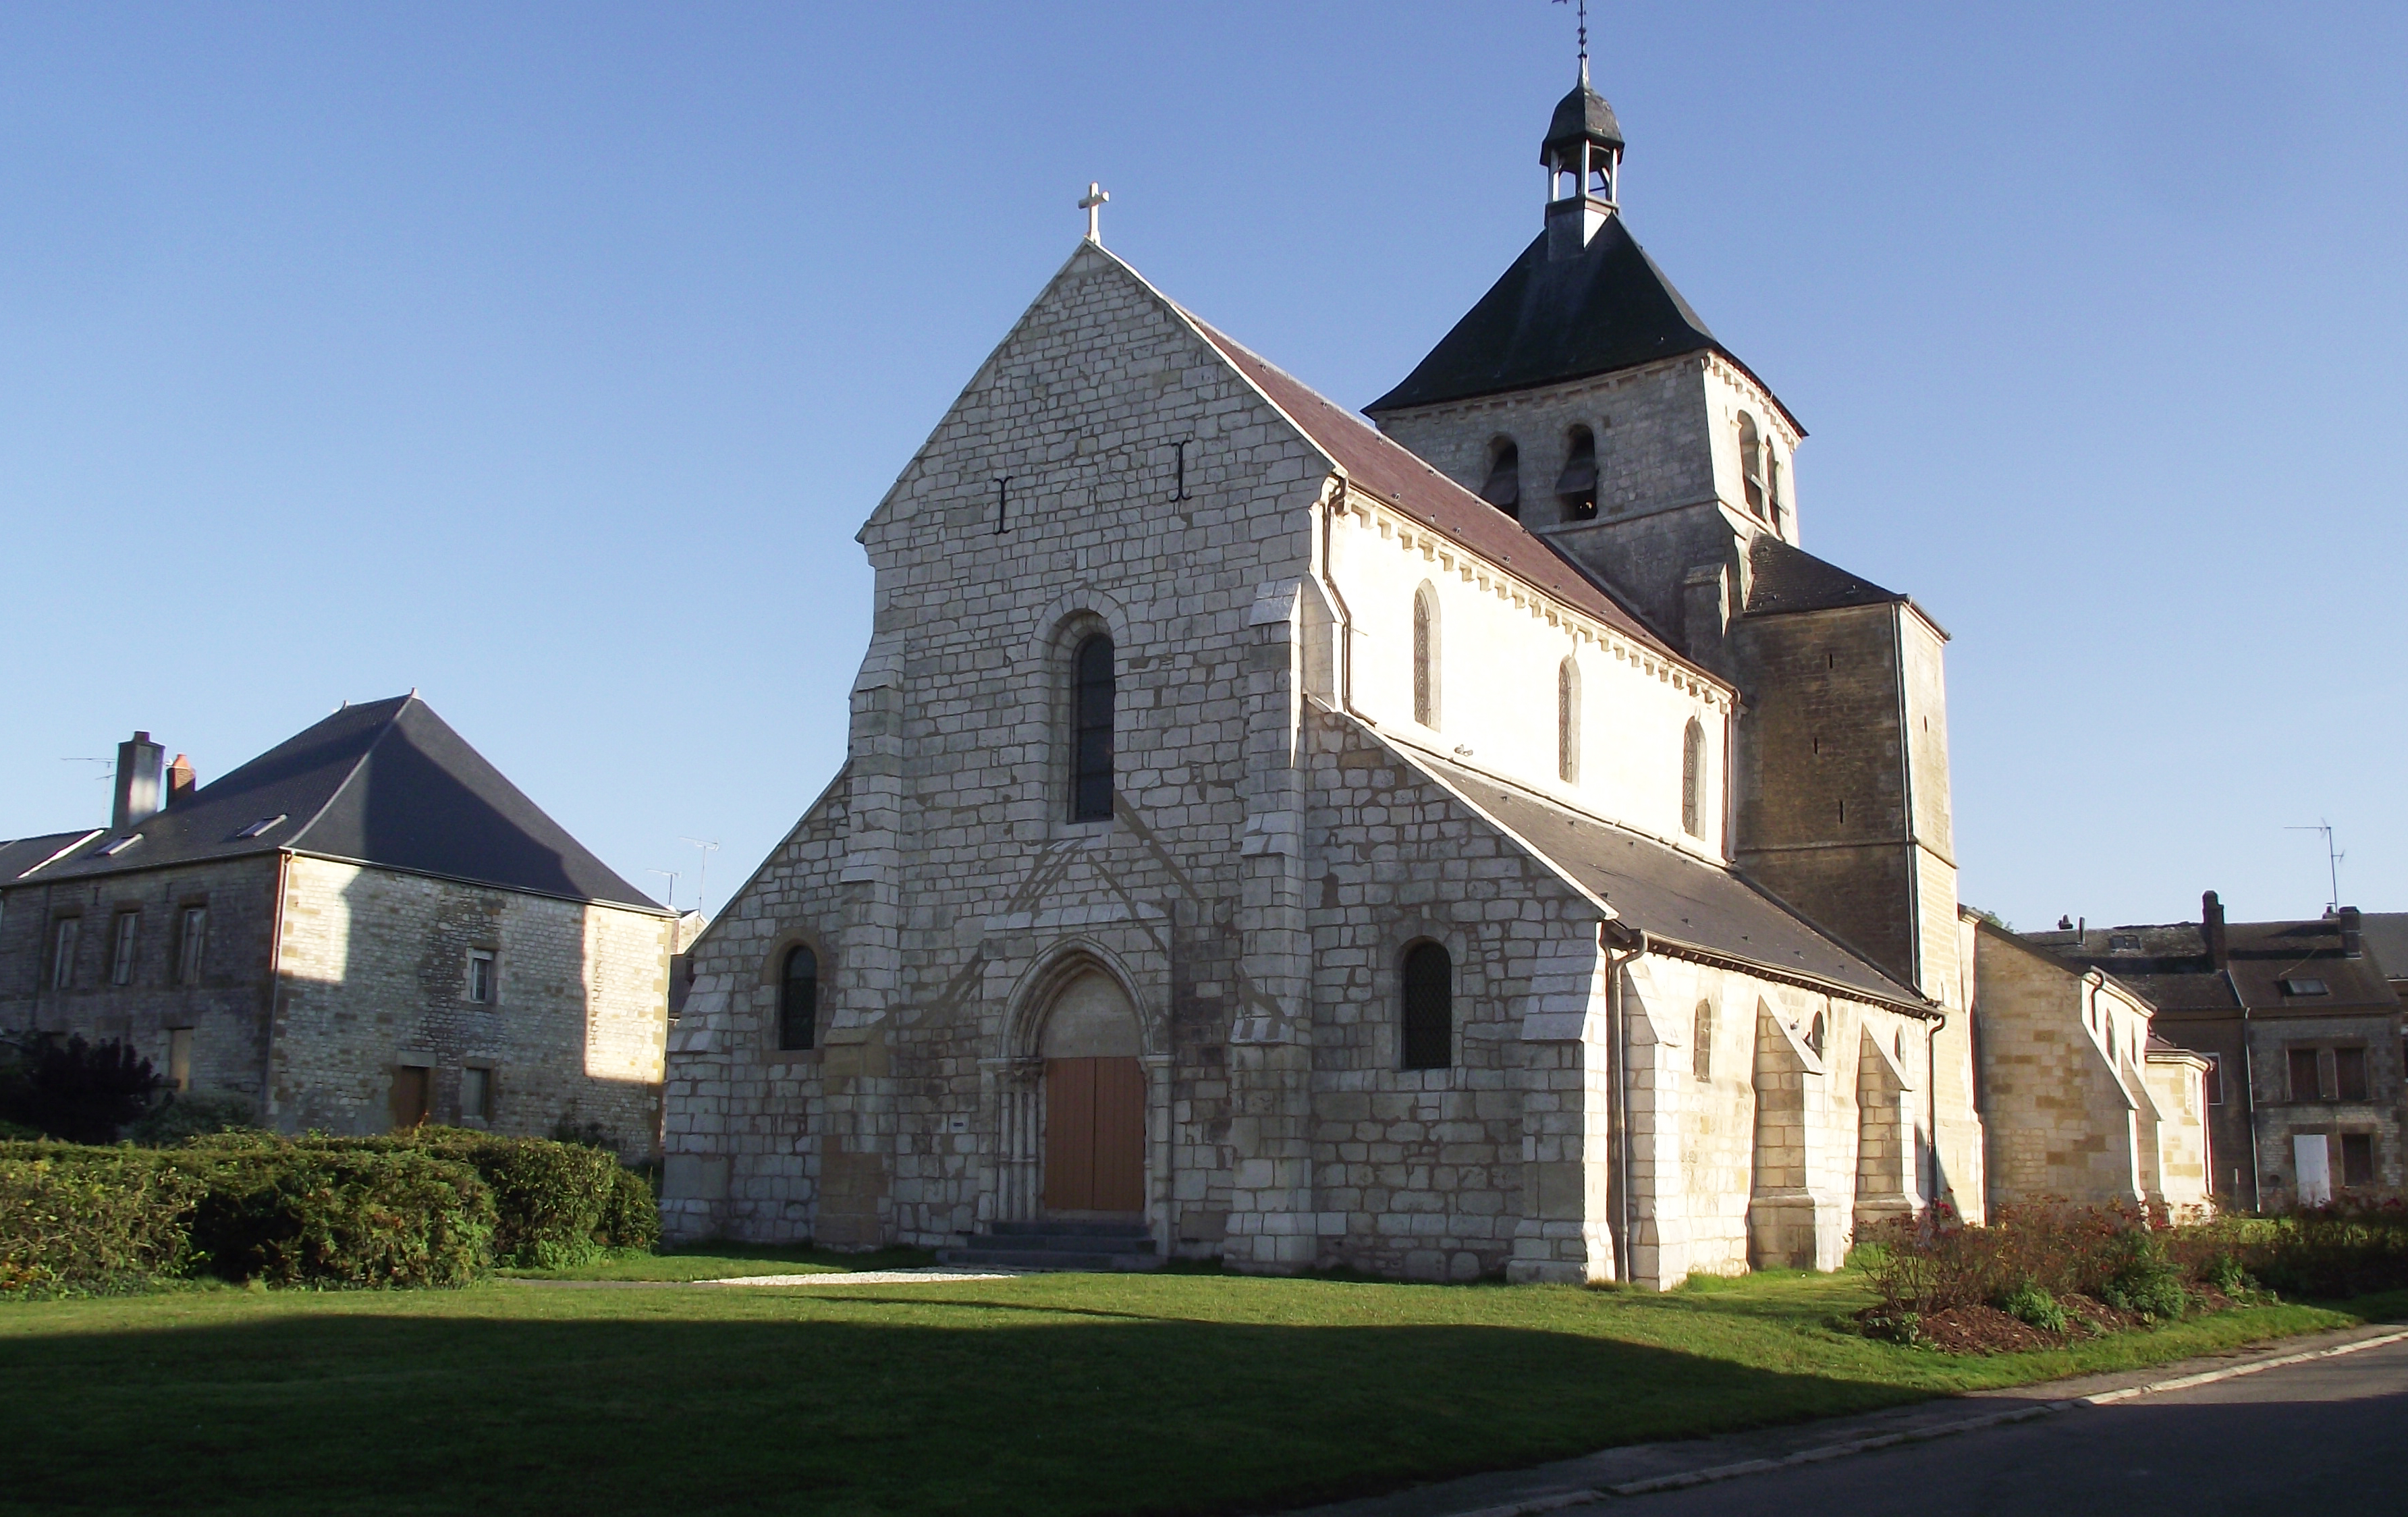 CHURCH VENDRESSE